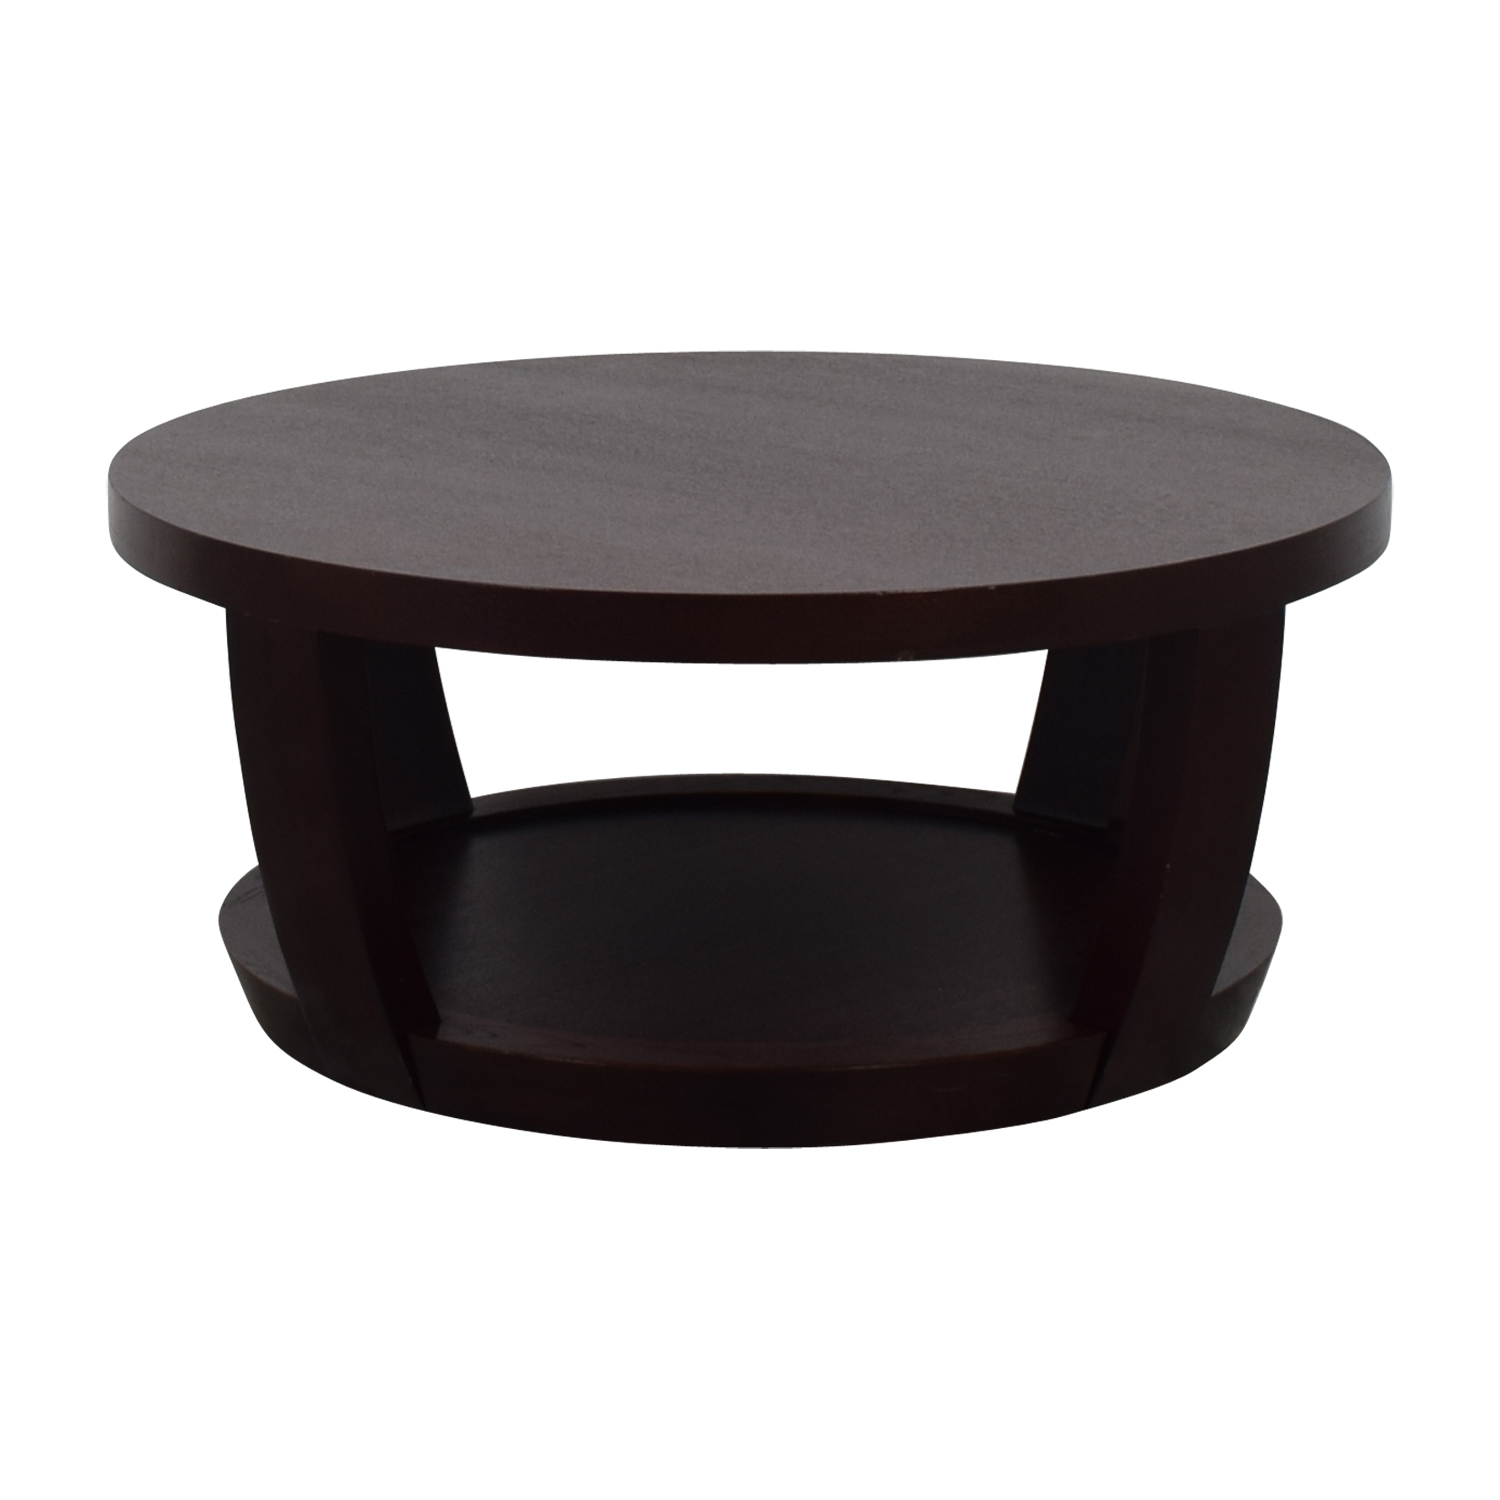 Macy's Macy's Round Wood Coffee Table dimensions